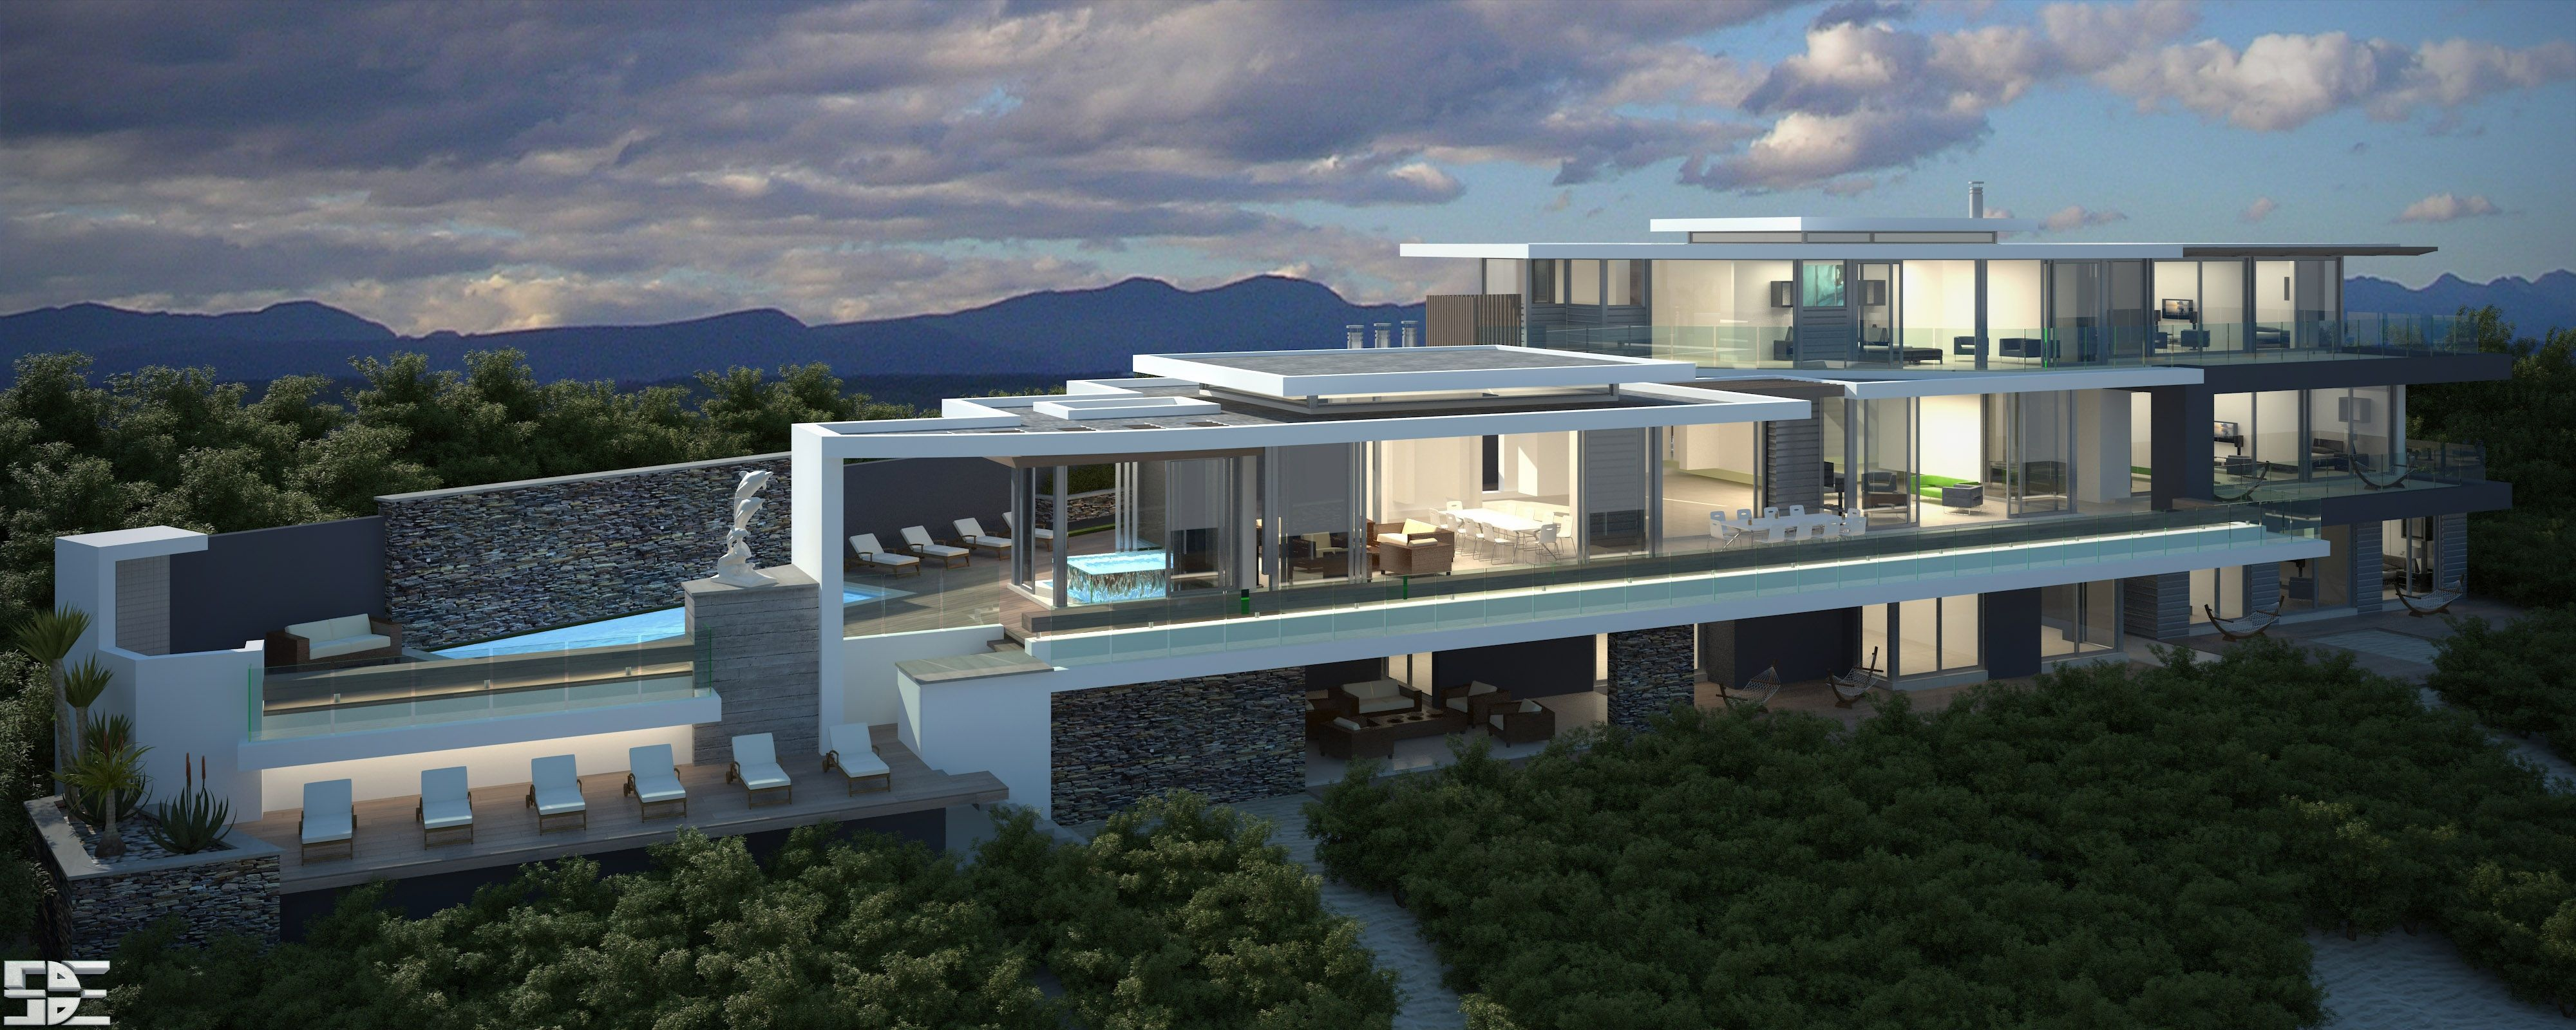 House design by johan breytenbach and suzette hammer of - Architectural home designs in south africa ...